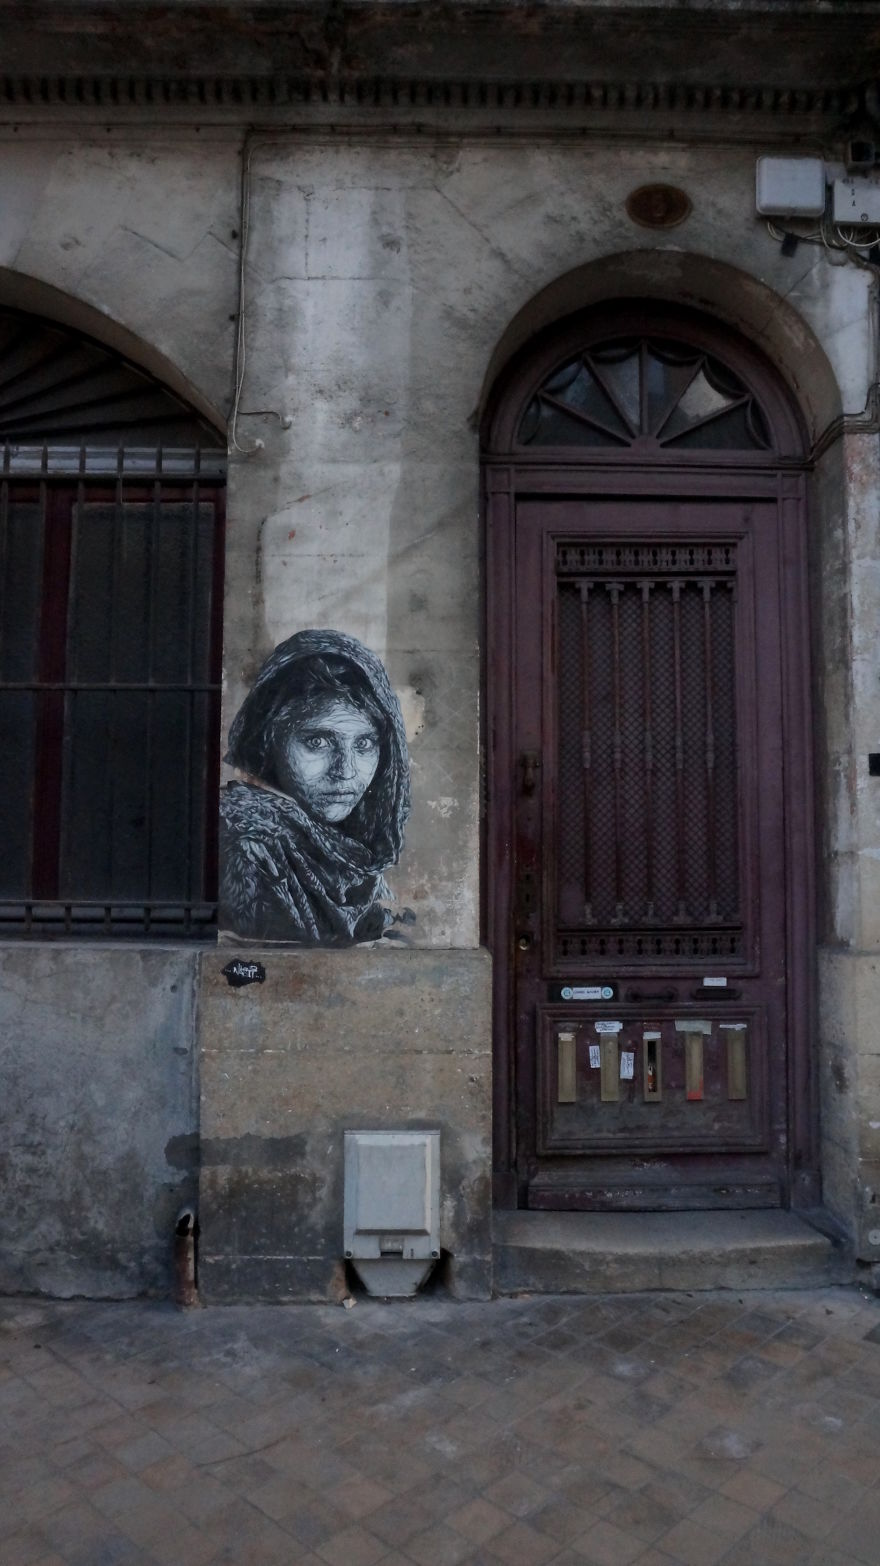 I Want To Show People That France Is Not Only About Eiffel Tower Through Street Art